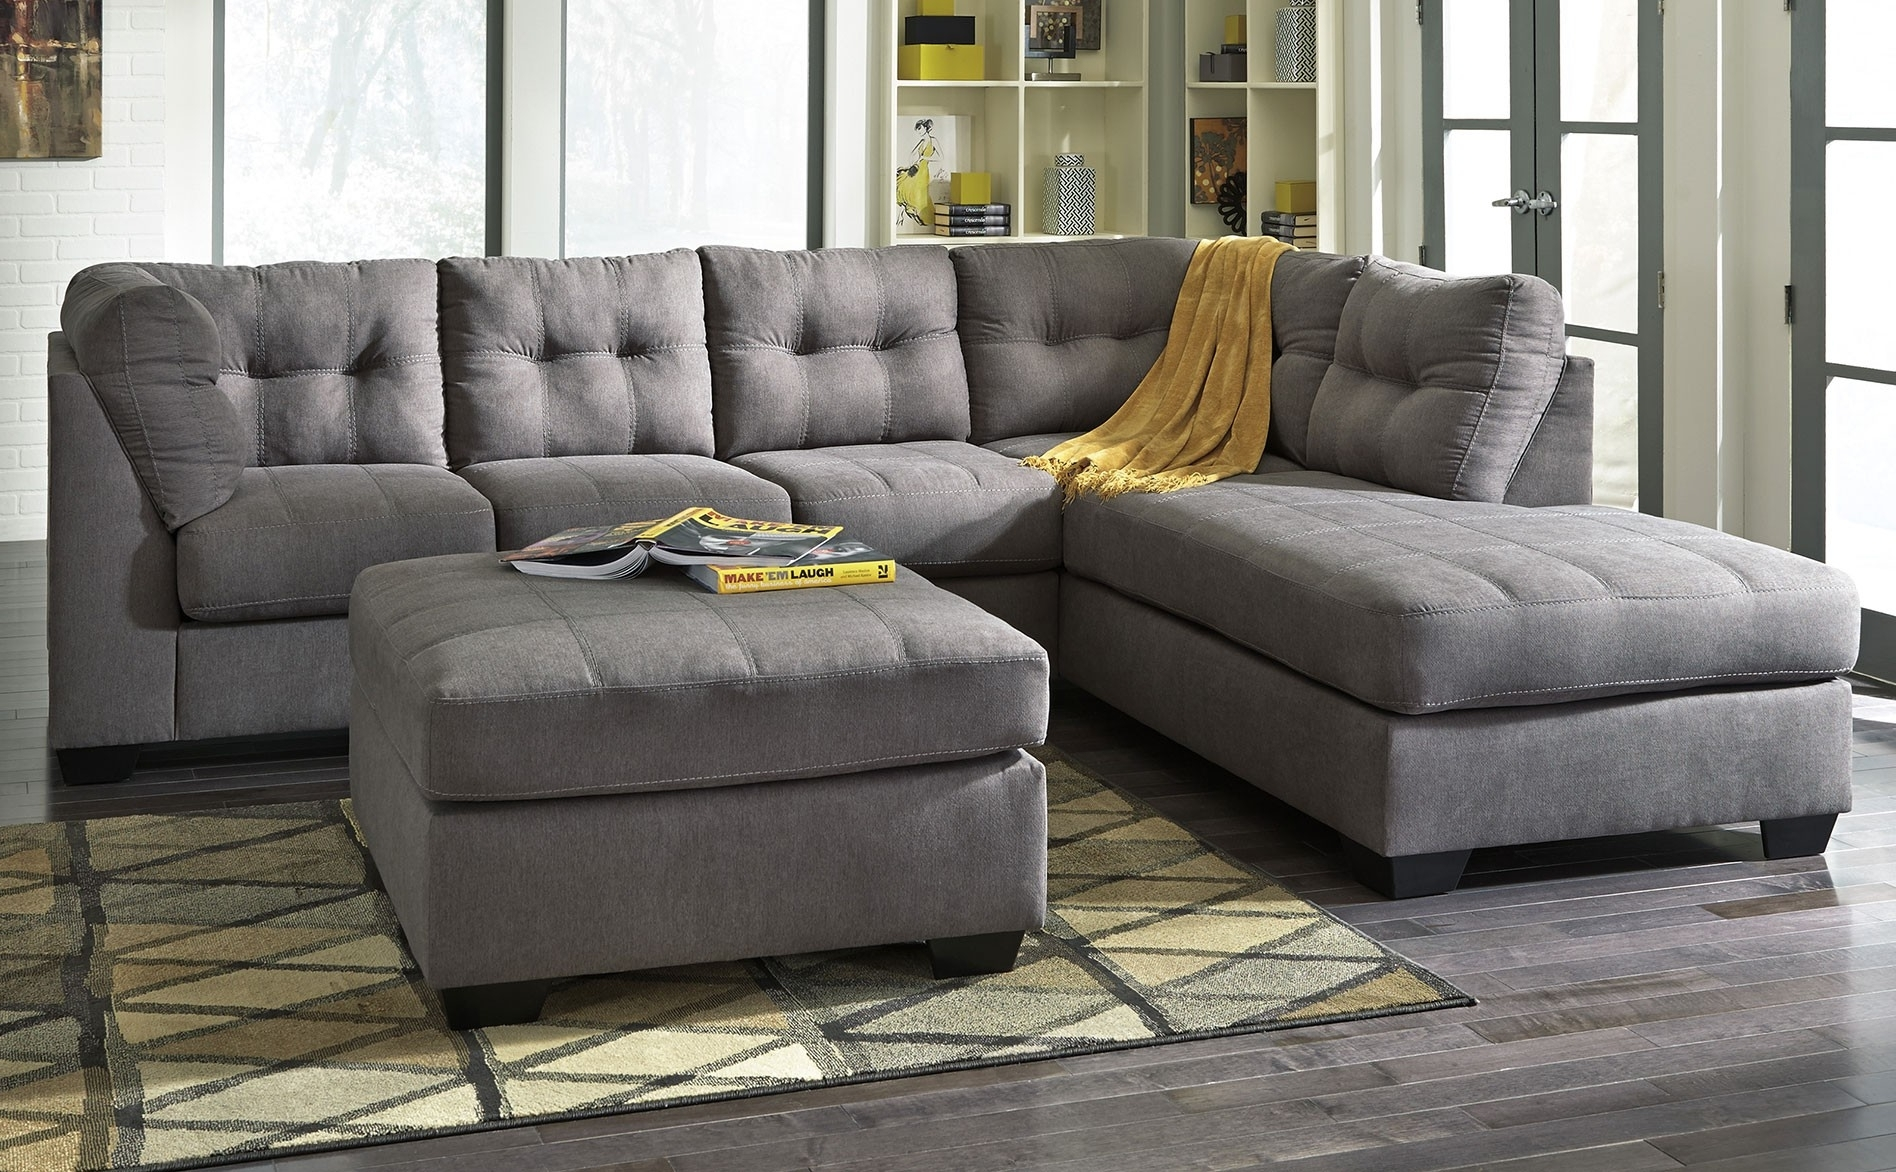 2017 Grey Sectionals With Chaise For Best Ideas Of Sectionals With Chaise Lounge Also Living Room Grey (View 2 of 15)